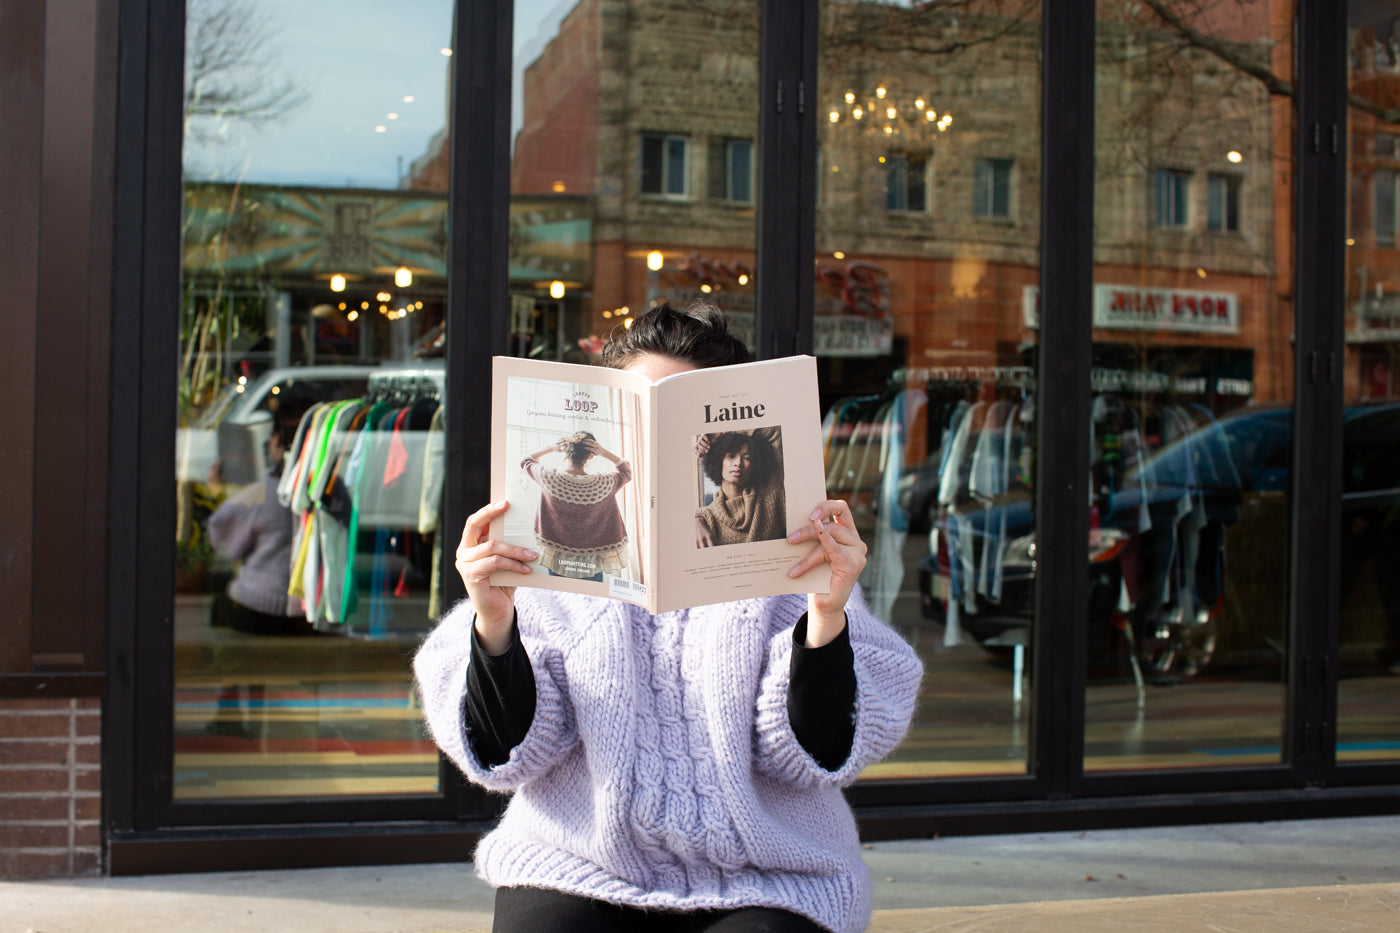 Women sitting on a bench.  Women is wearing a pale lavender knitted cable sweater, holding up a Laine magazine in front of her face.